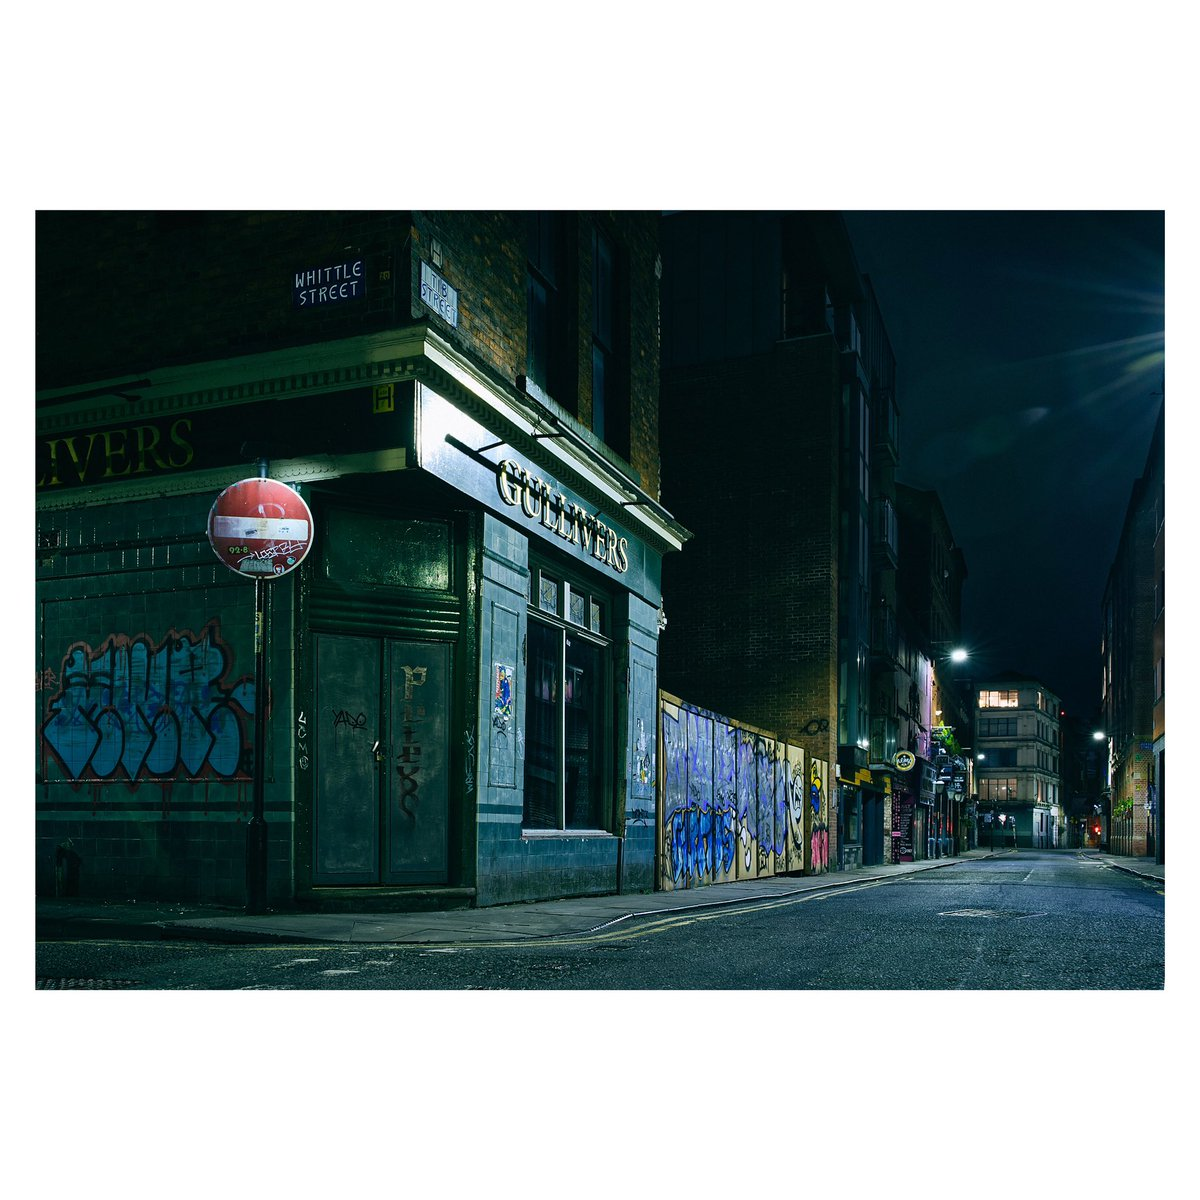 Nights out in Manchester aren't what they used to be #10 . Saturday 28th March 2020 21.00hr . #lockdown #manchester #isolation #social #distancing #manchester  #nightphoto #nightphotography #photo #nightout #sony #sonya7iii #mancmade #weareoca #weareuca #ilovemcr #nqmanchesterpic.twitter.com/JHH9BKzY6m